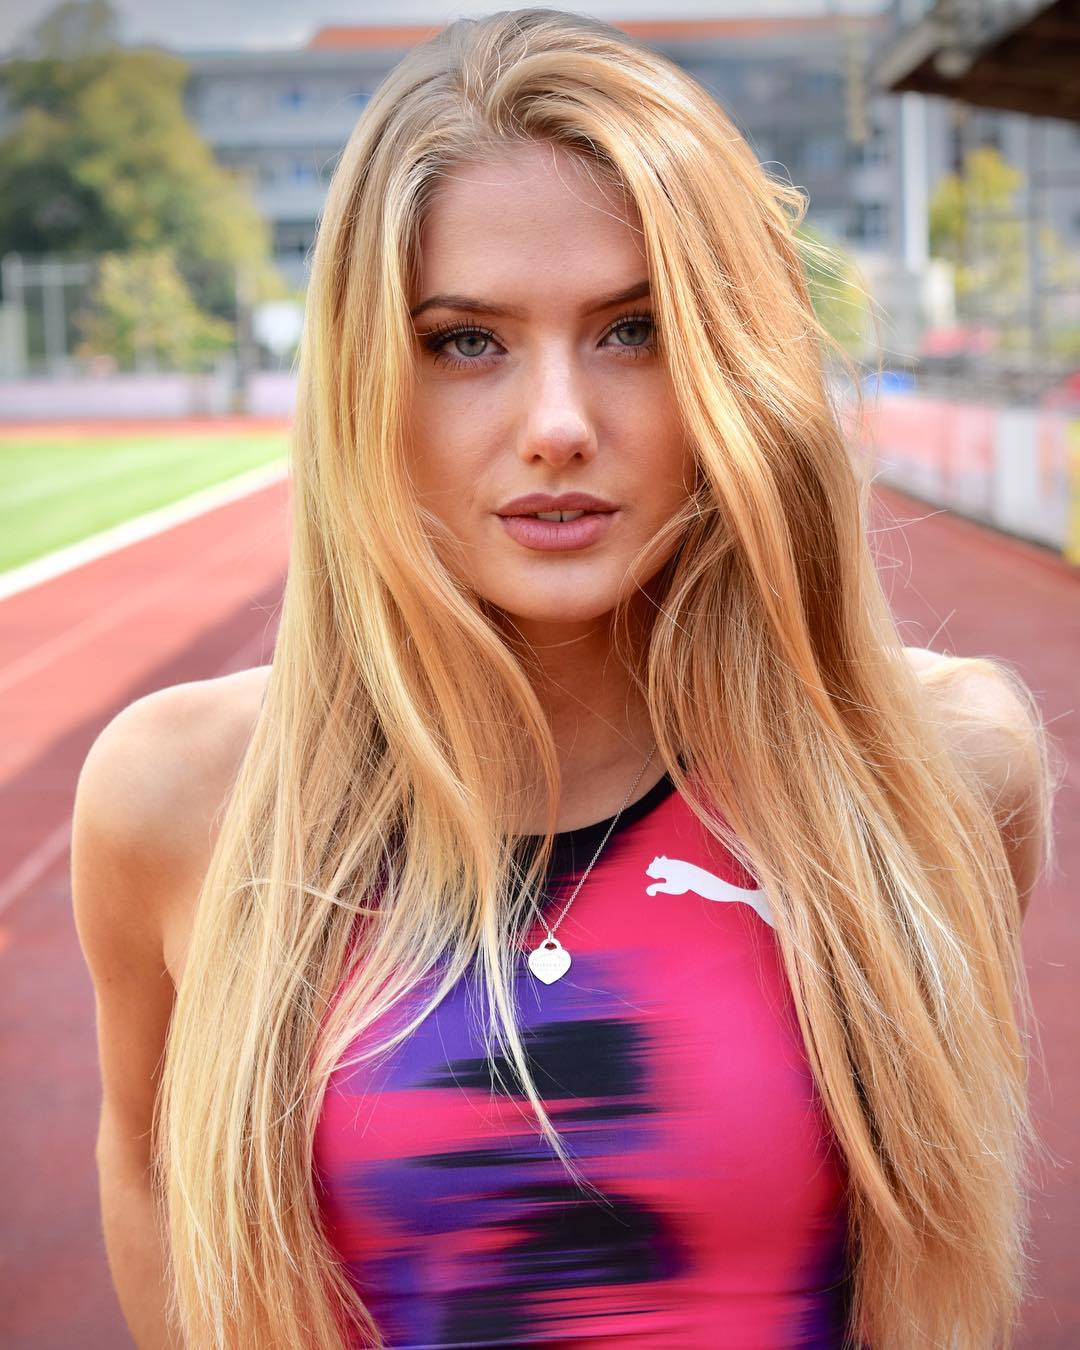 Hot German Athlete Alica Schmidt Pics - Alica Schmidt Net Worth, Pics, Wallpapers, Career and Biography